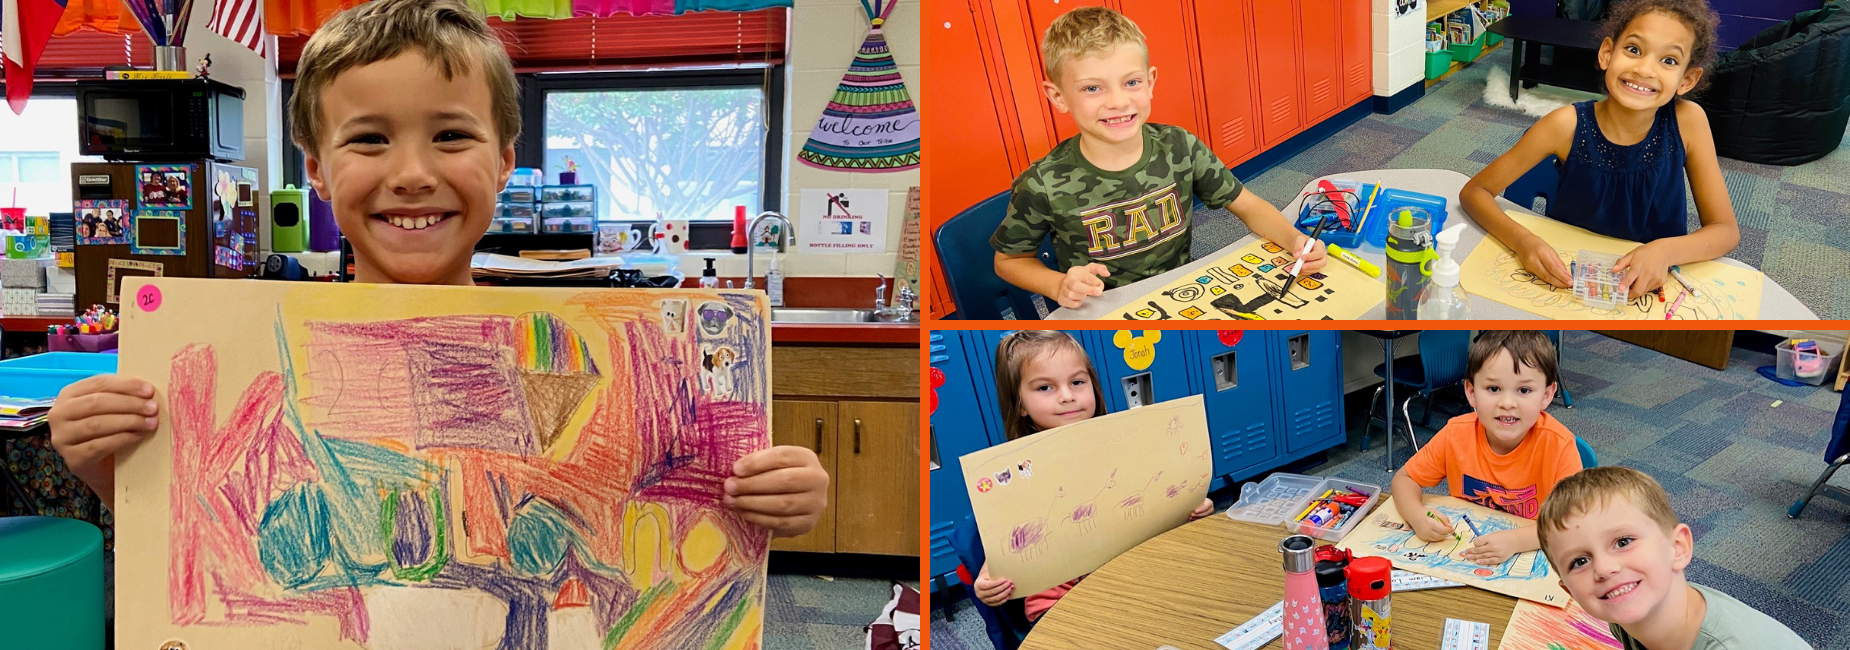 collage of 3 pictures with students coloring